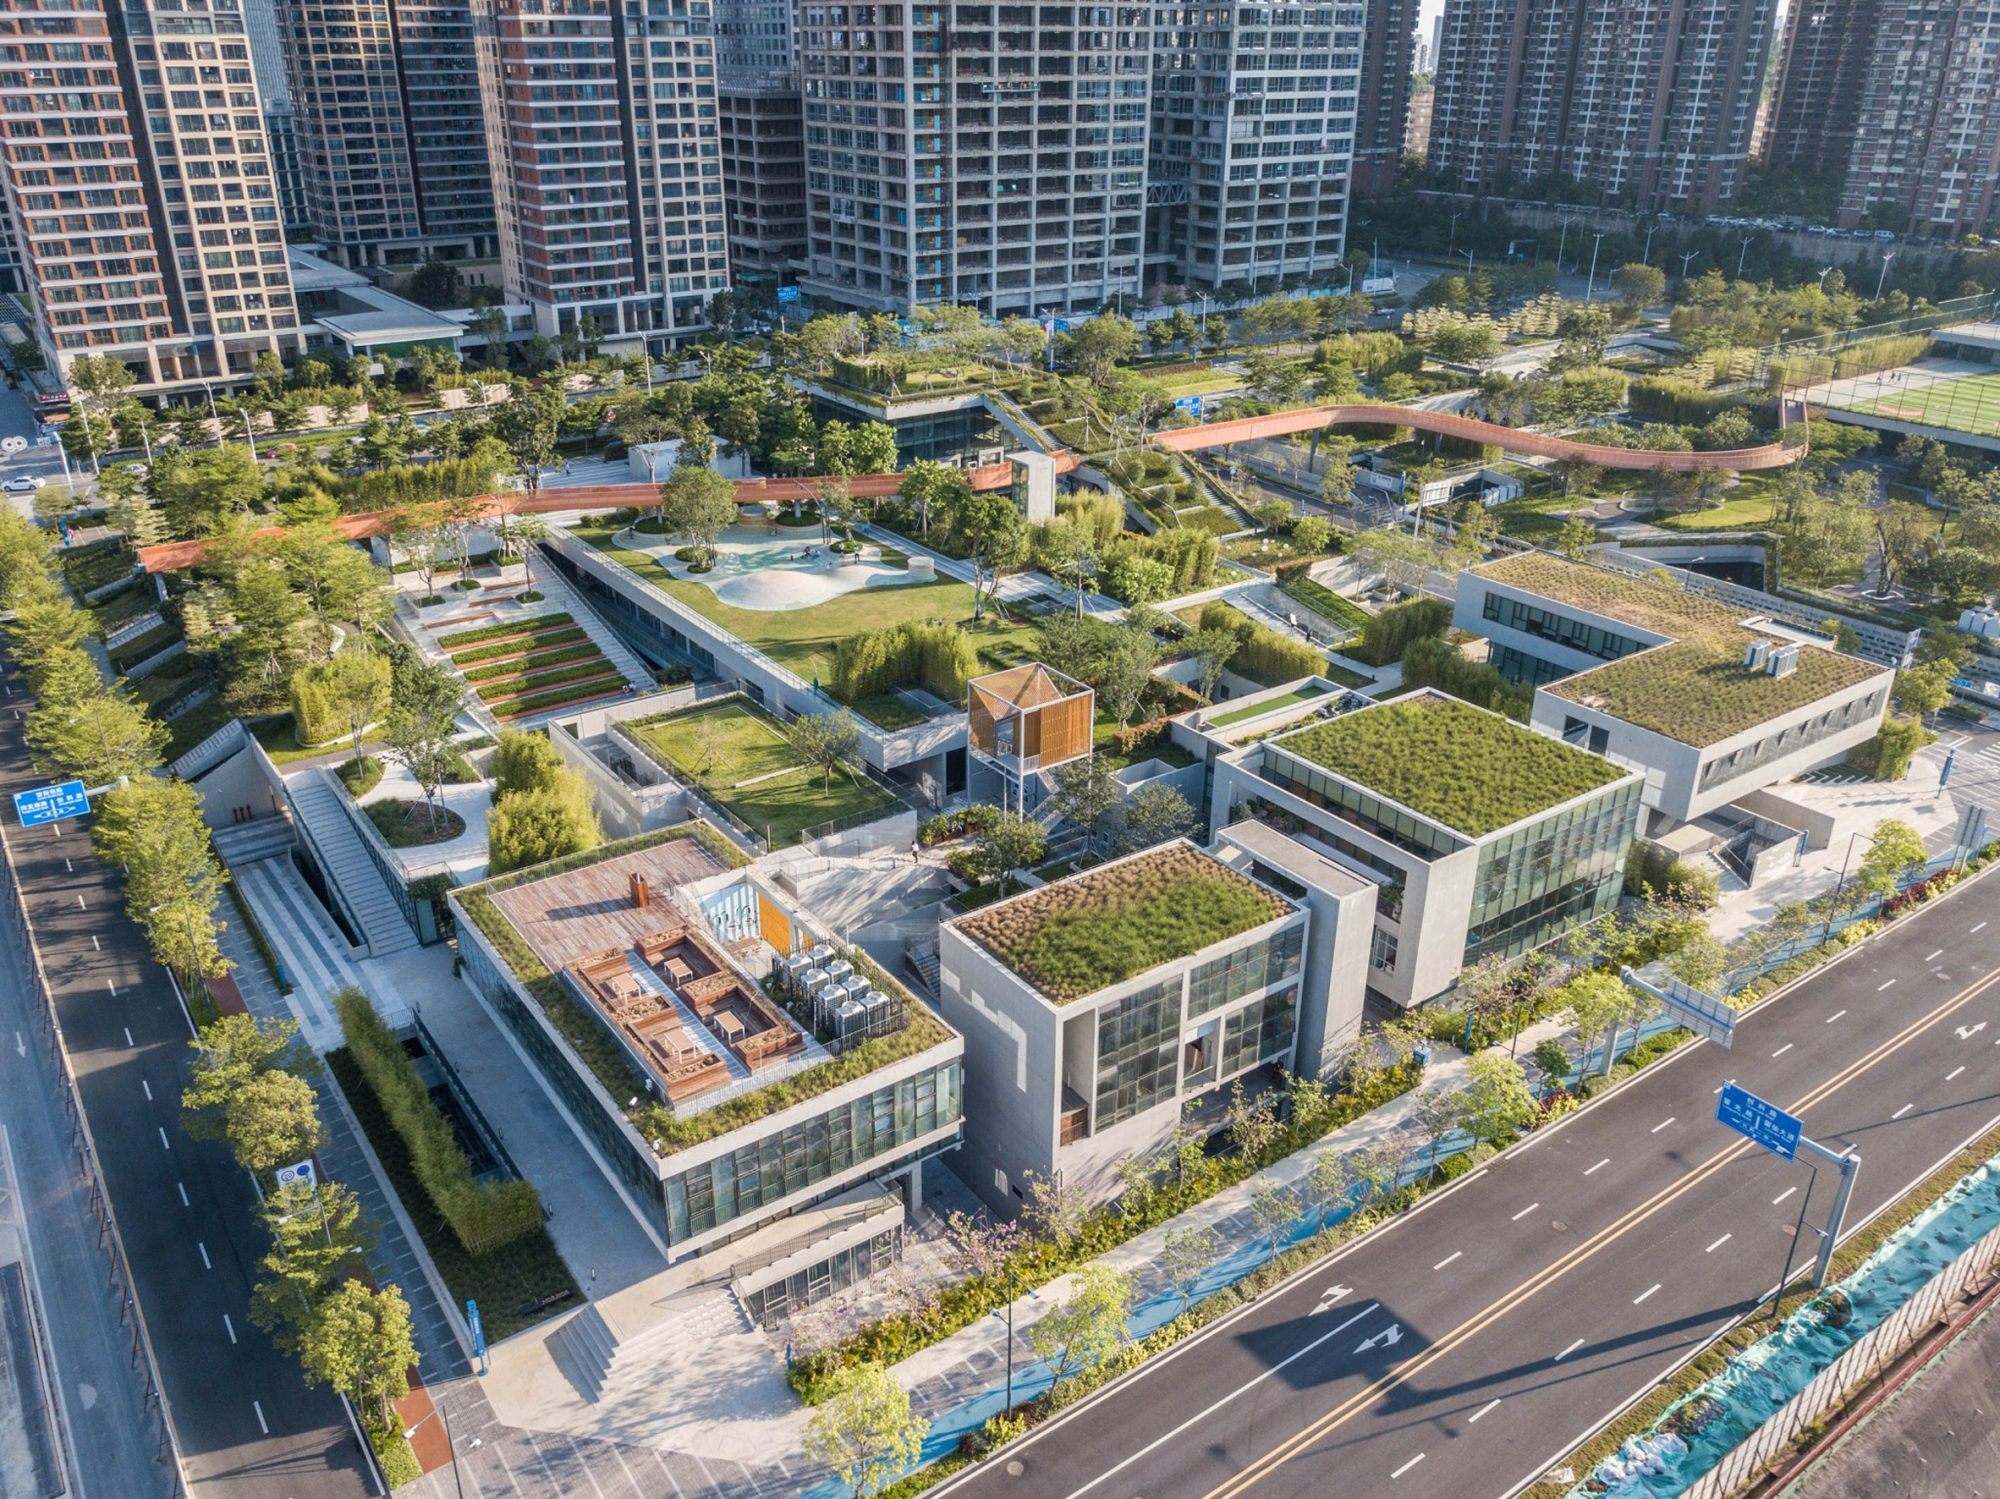 A campus-like park of concrete offices topped with green roofs in Shenzhen